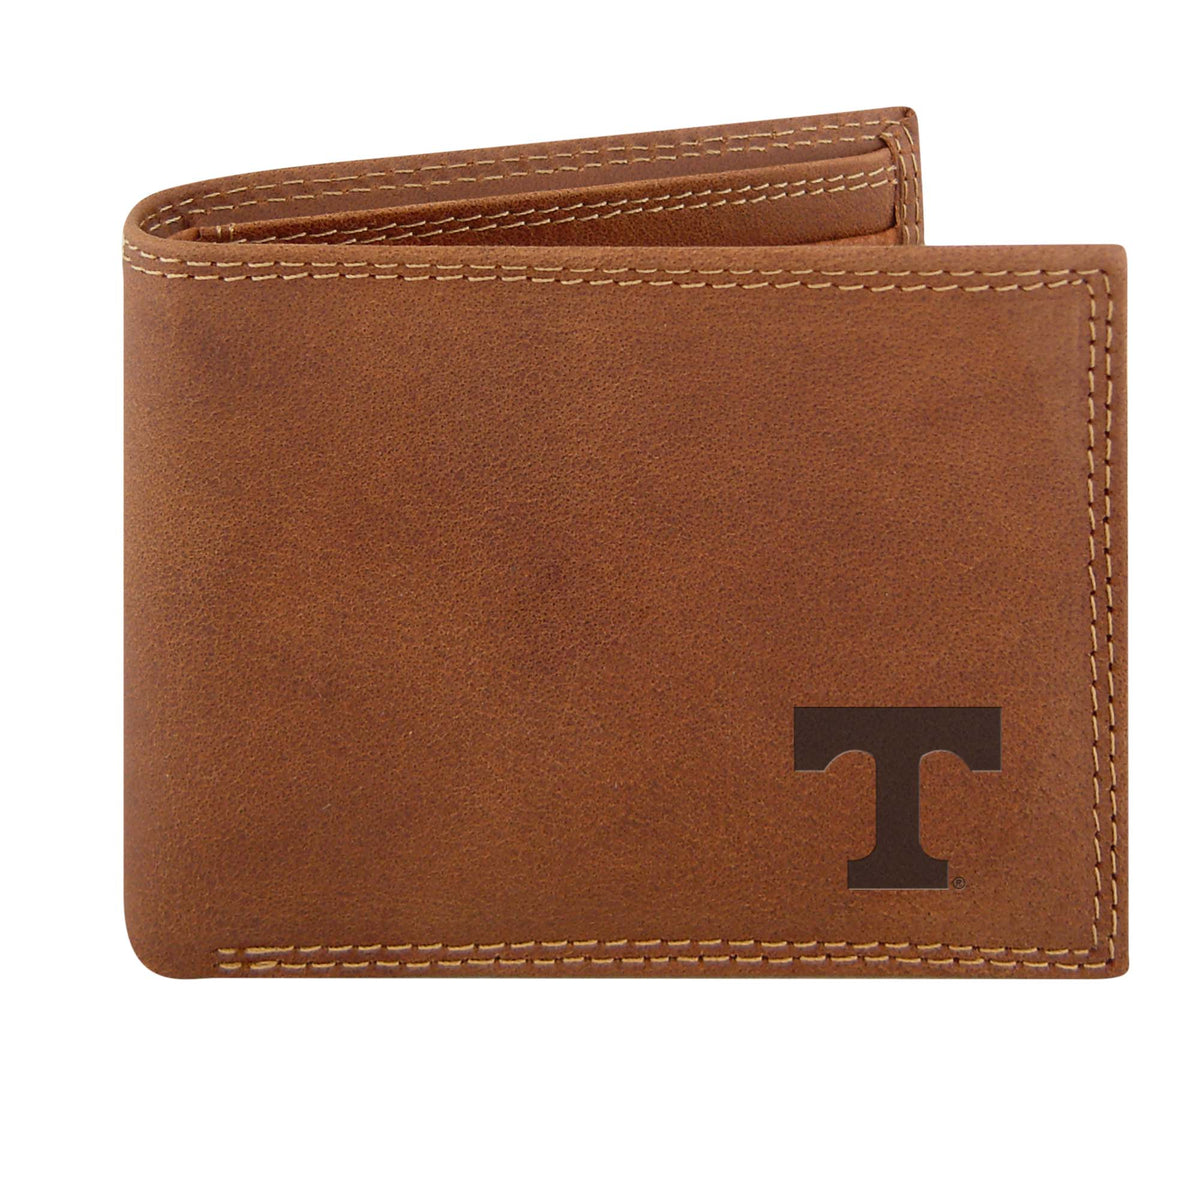 UT Embossed Leather Bifold